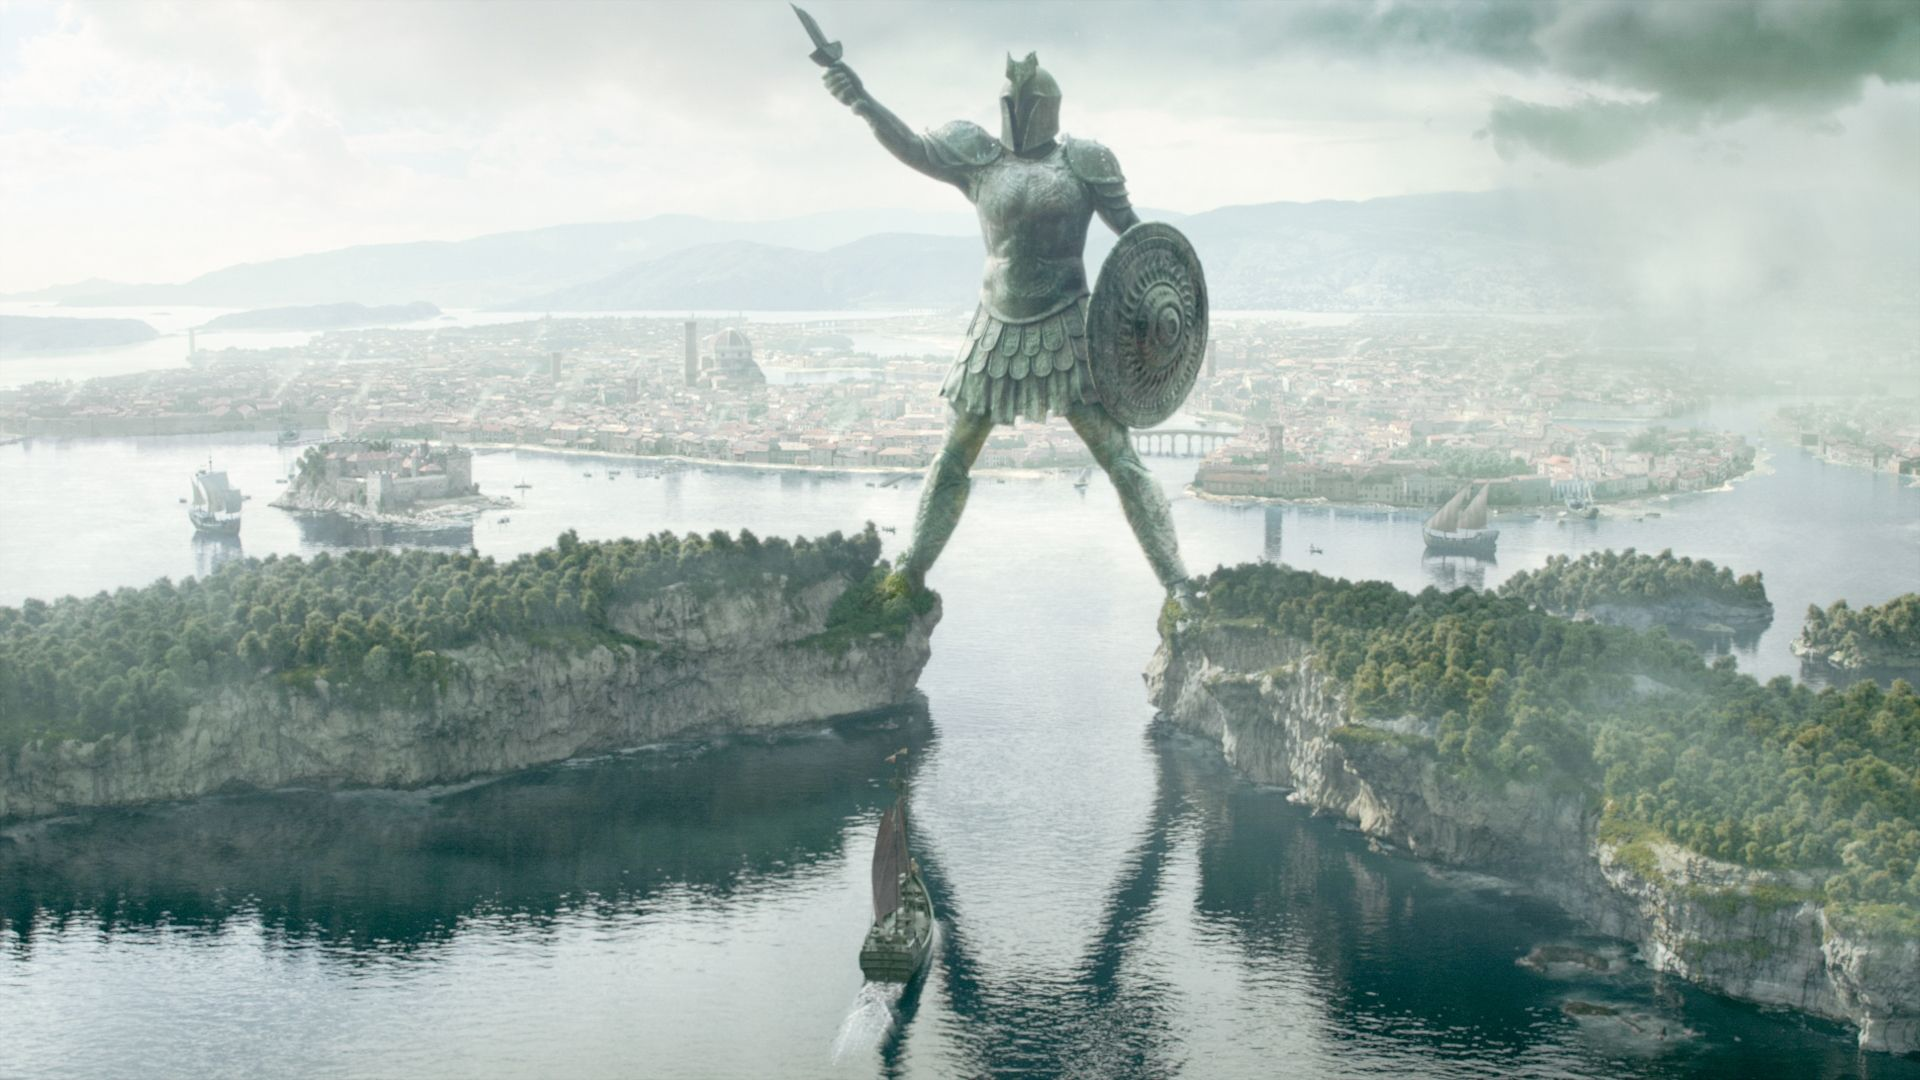 Game of Thrones landscape the statue